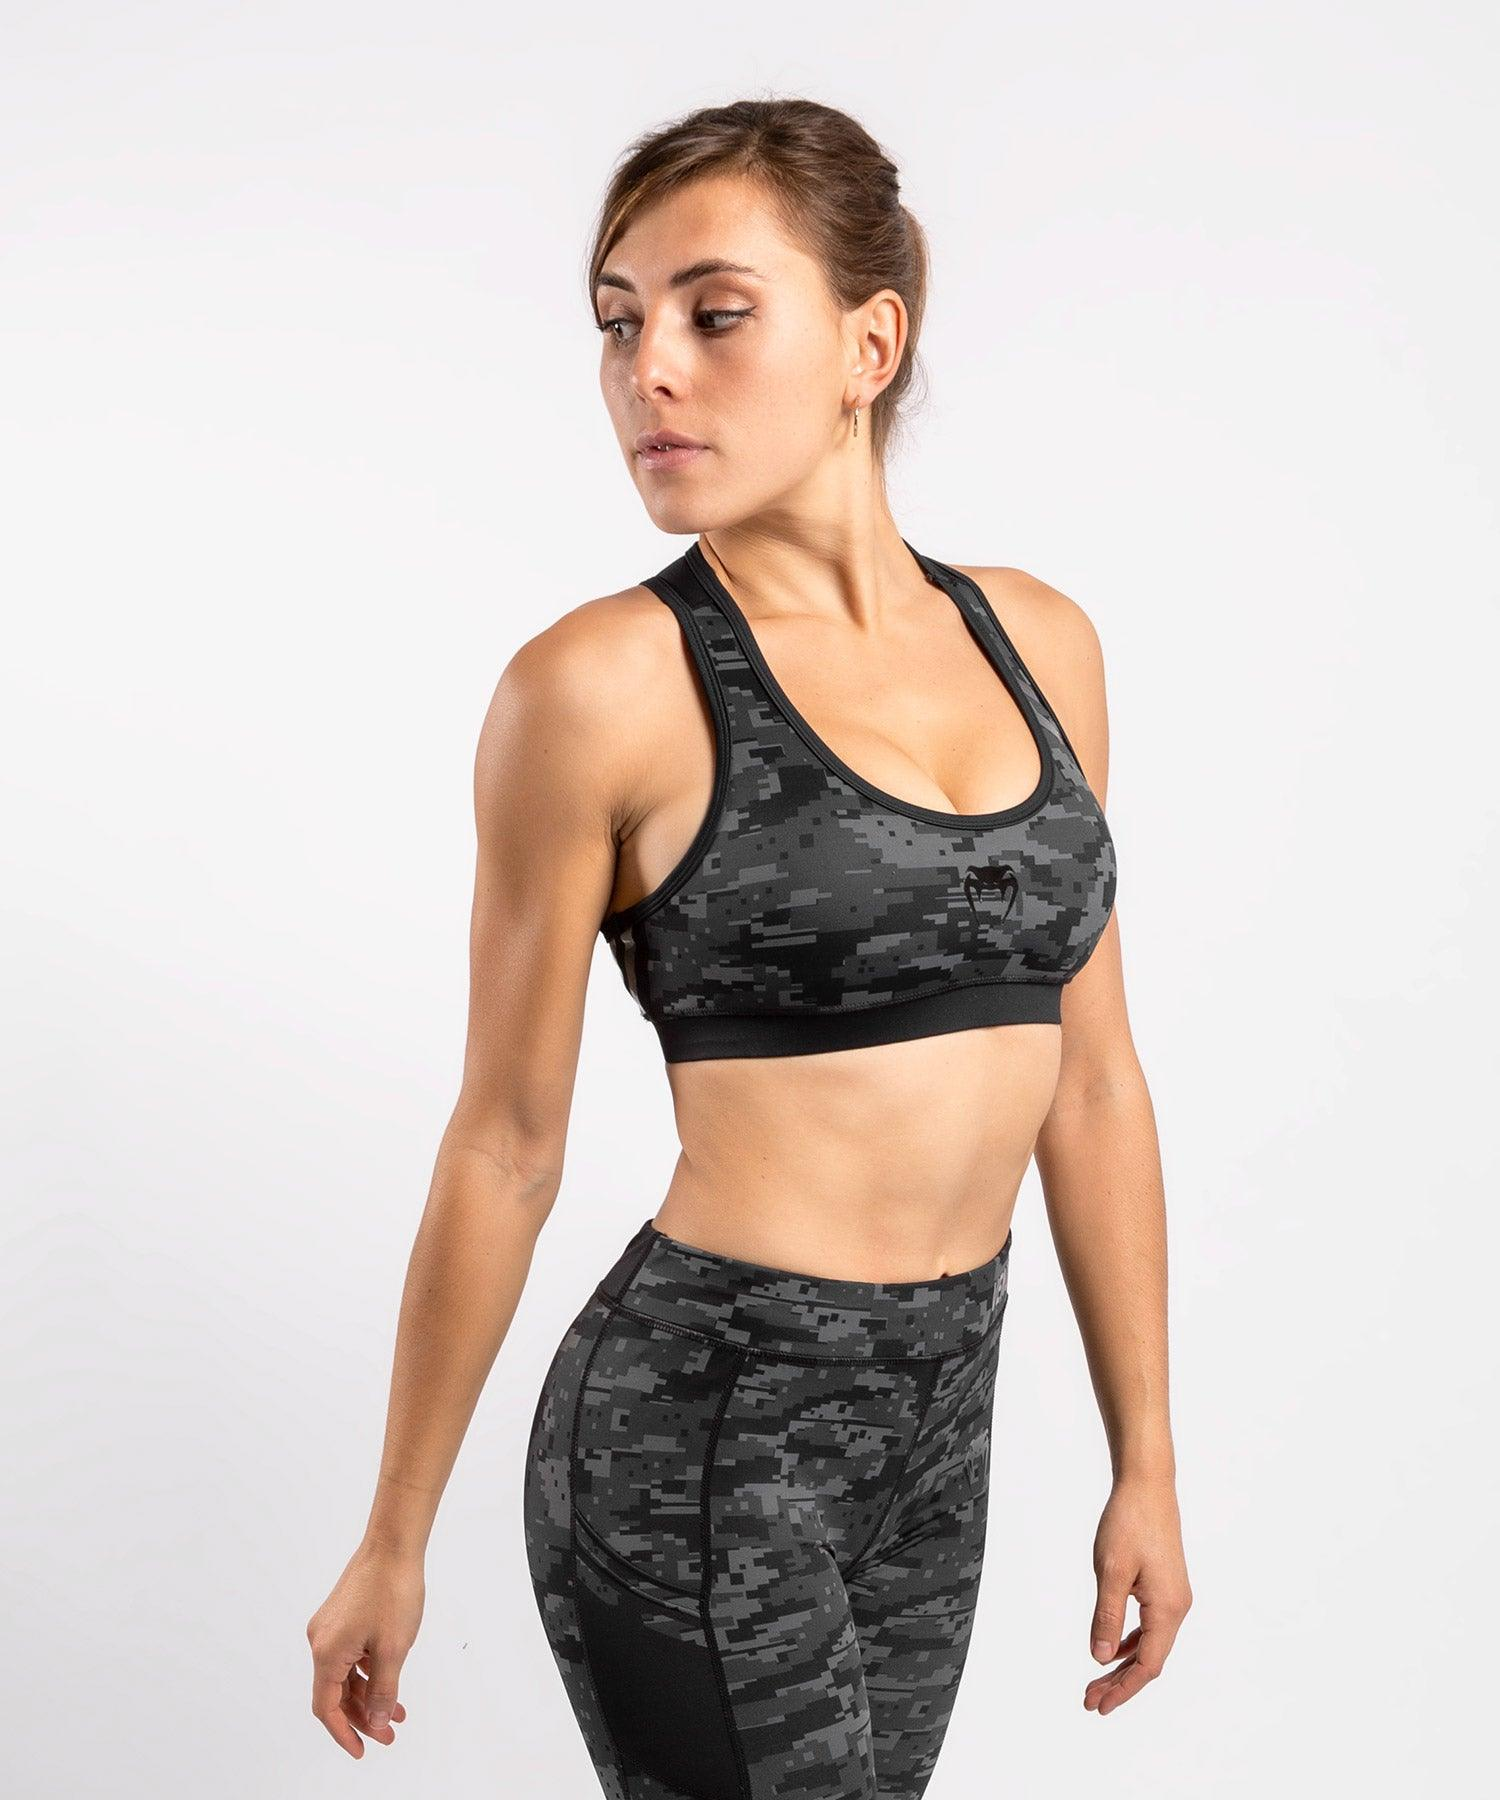 Venum Power 2.0 Sport Bra - For Women - Urban digital camo - picture 1